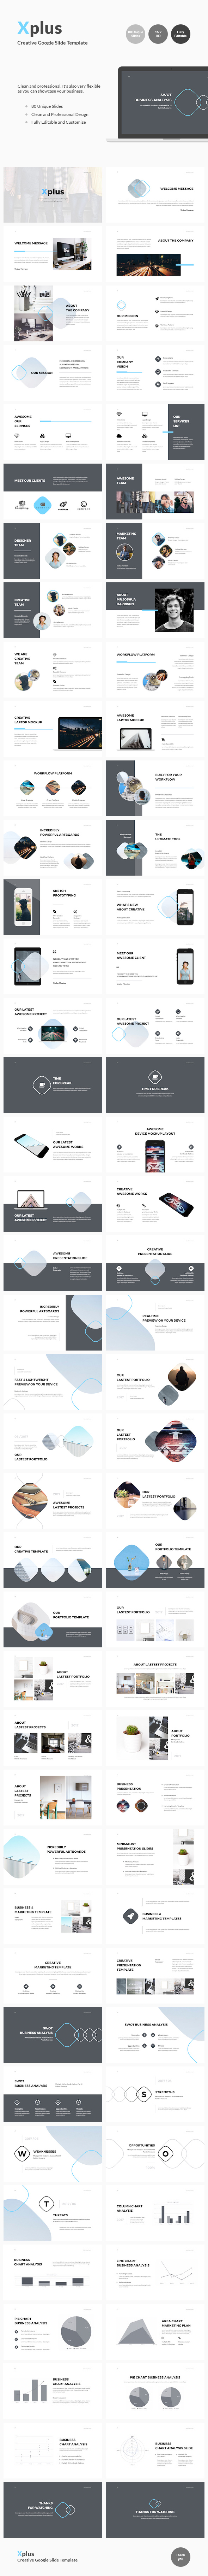 GraphicRiver Xplus Creative Google Slide Template 20384086